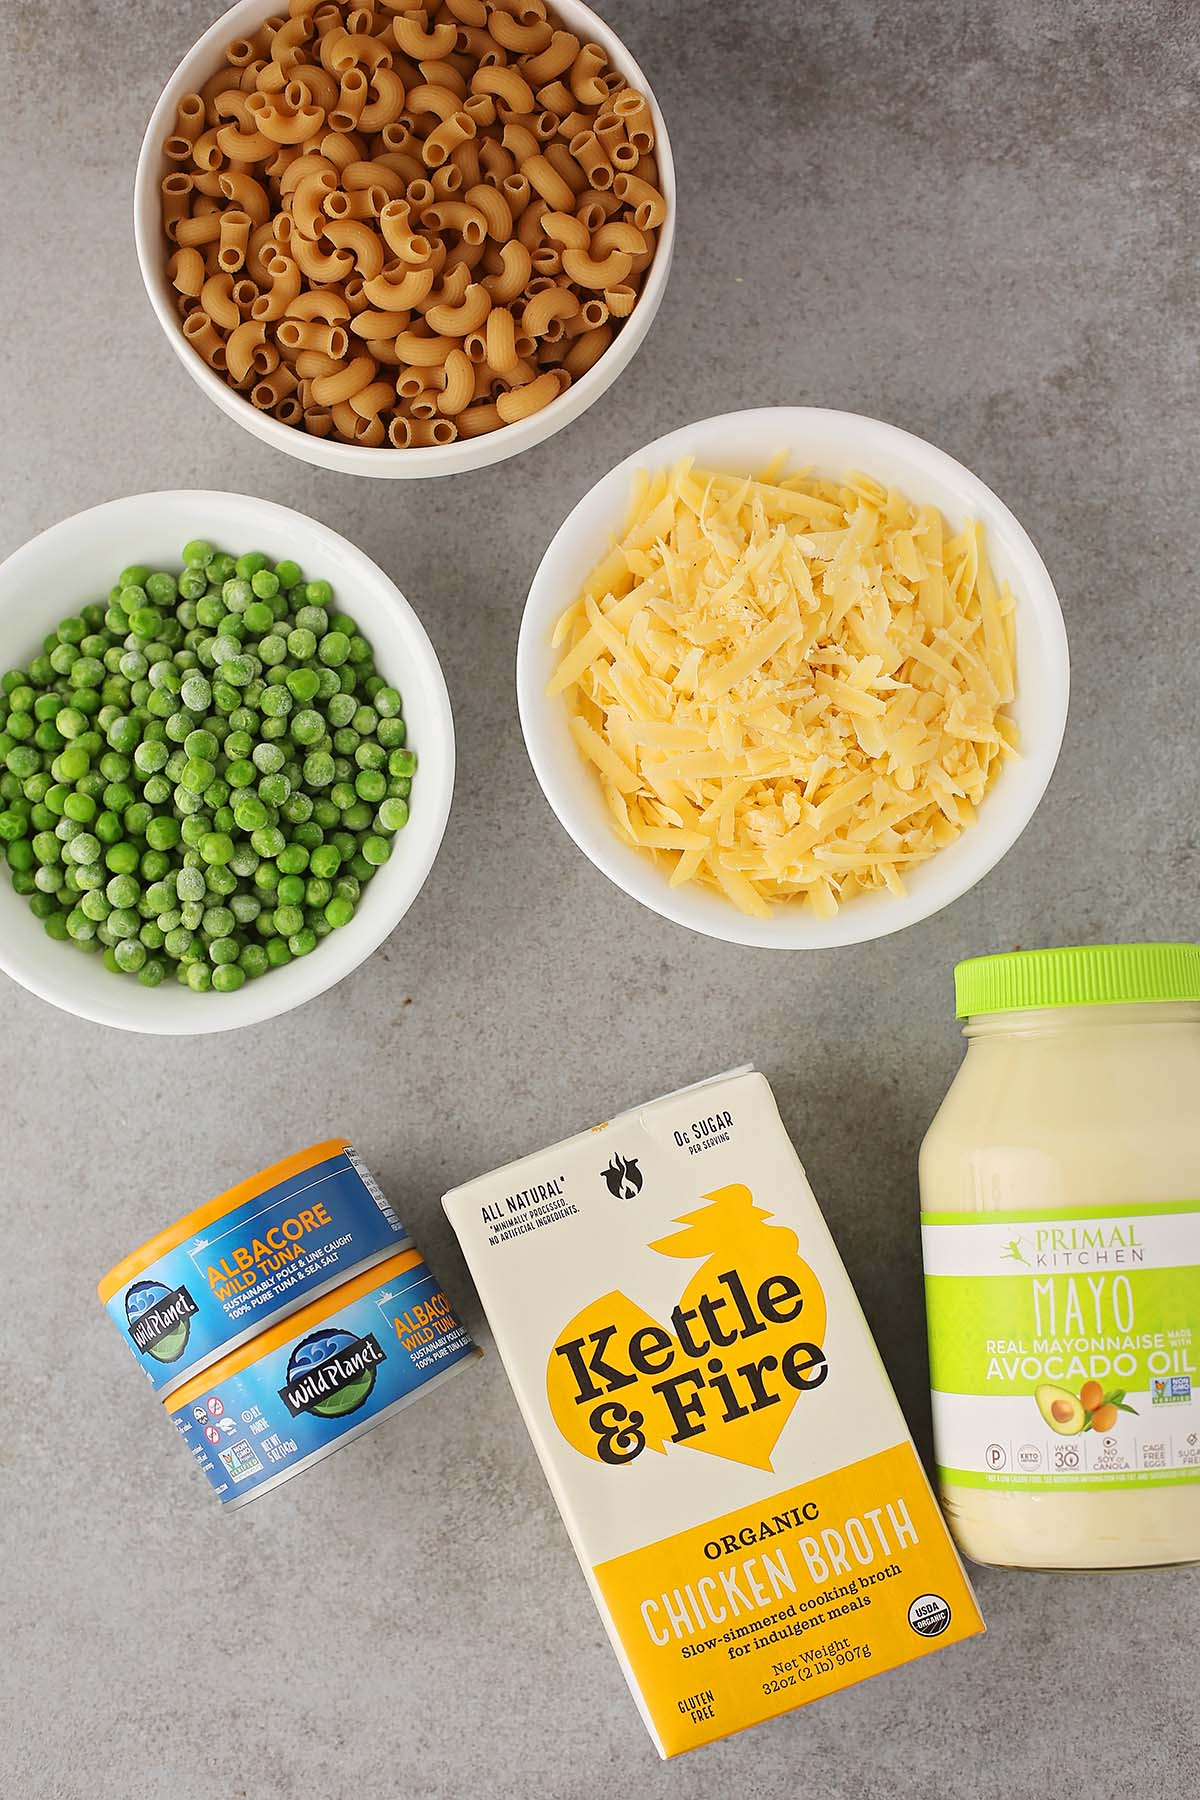 ingredients to make pasta in the instant pot